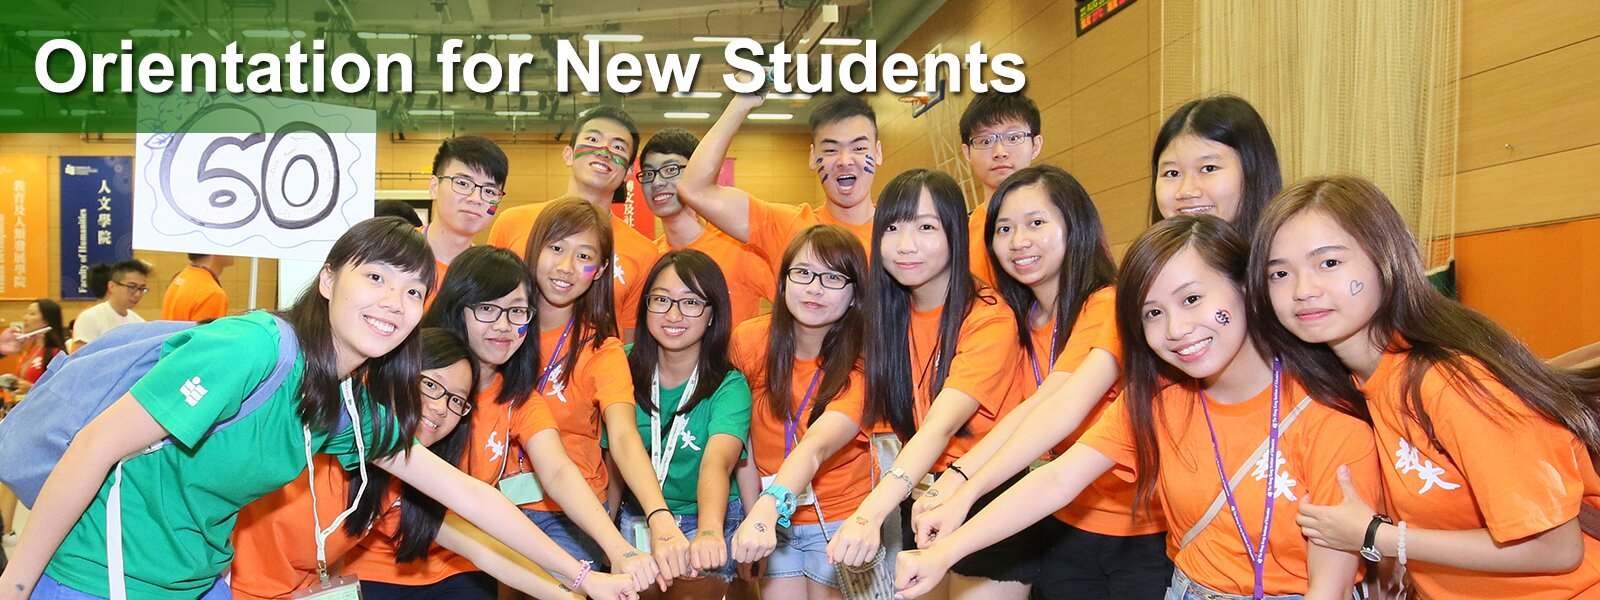 Orientation for New Students